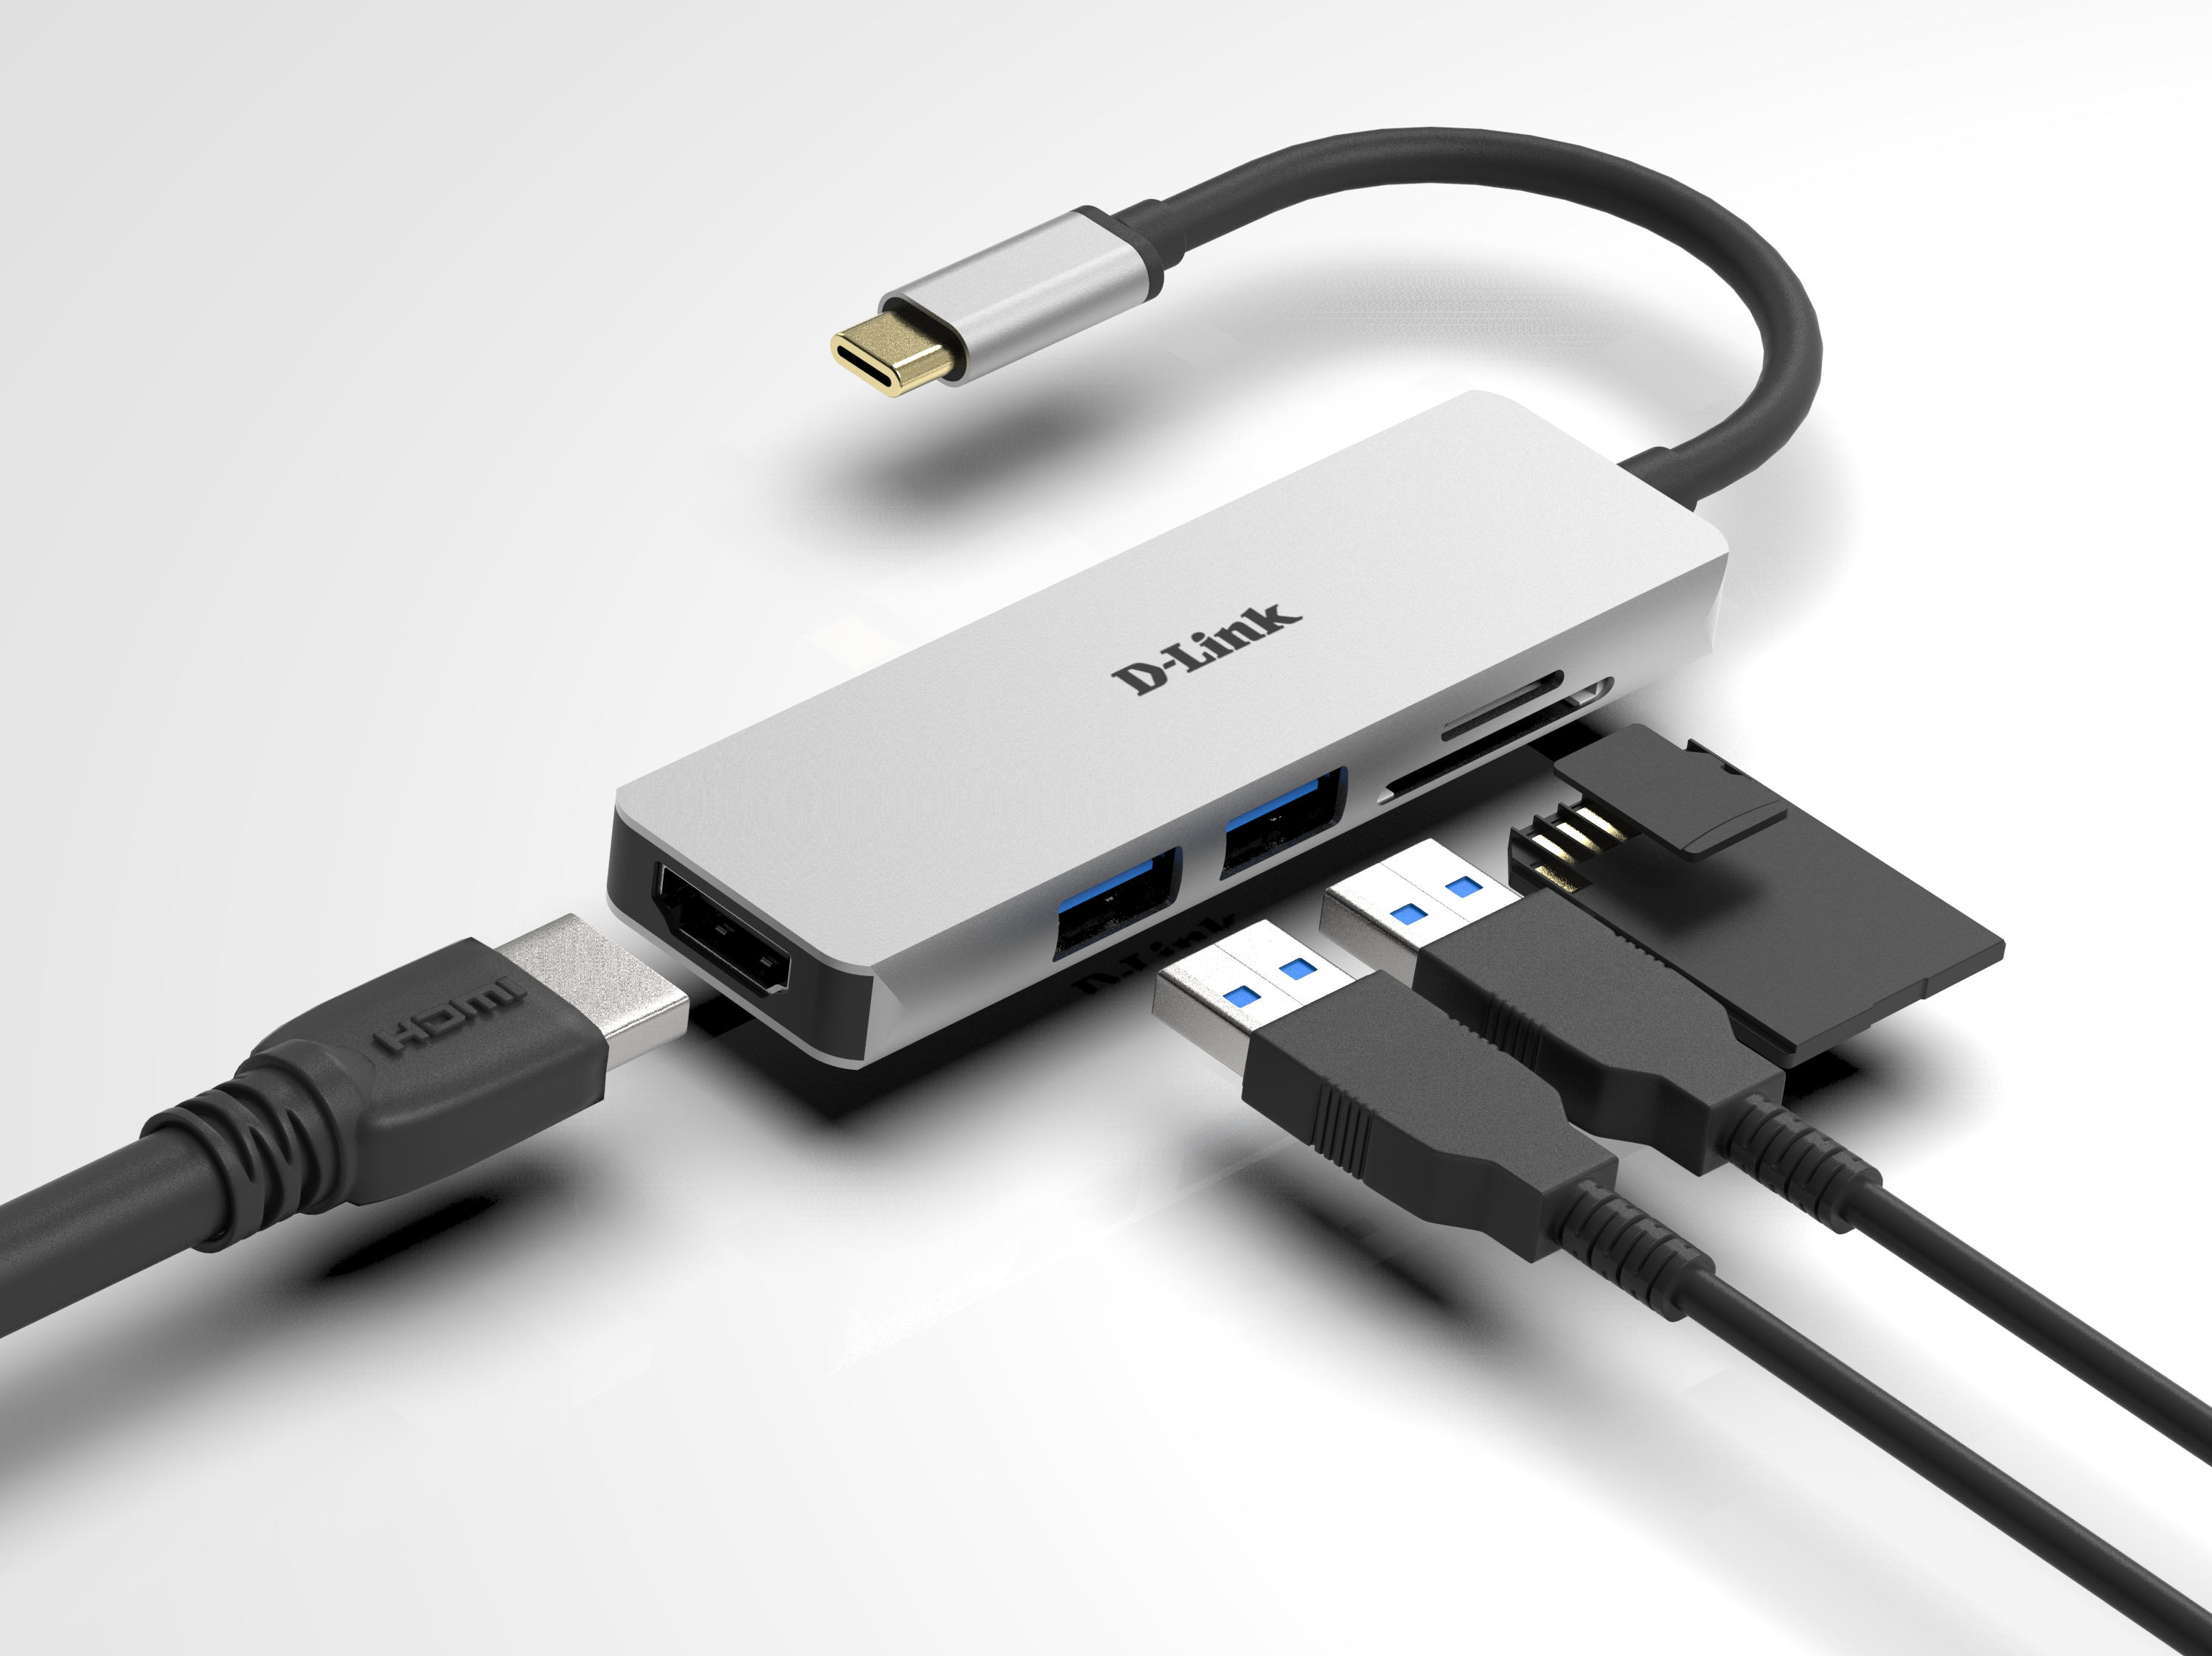 DUB-M530 5-in-1 USB-C Hub with HDMI and SD/microSD Card Reader - example connections